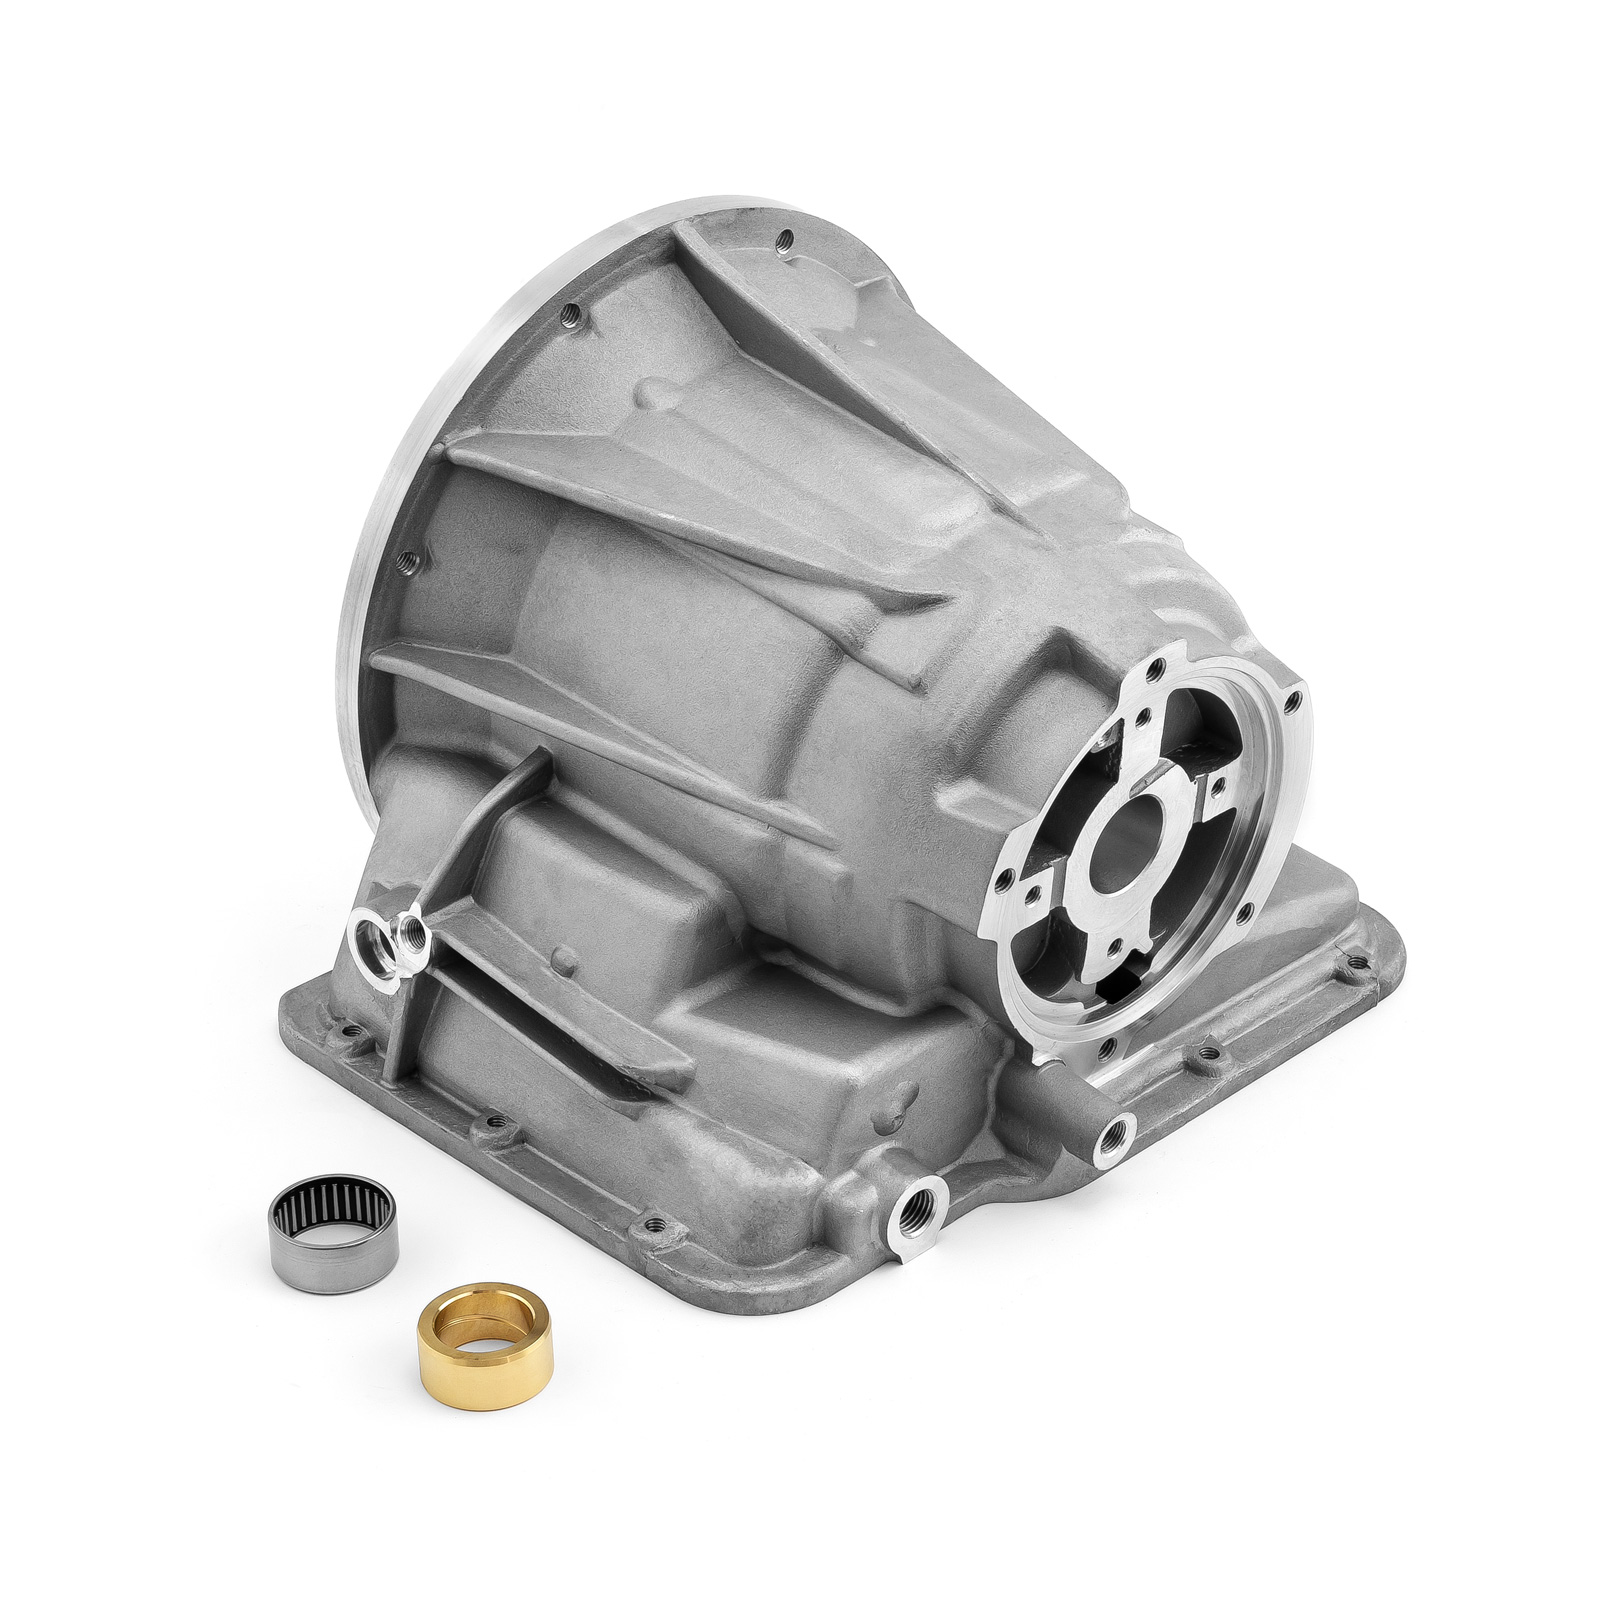 GM Powerglide Aluminum Transmission Case Only w/ Roller Bearing SFI Approved